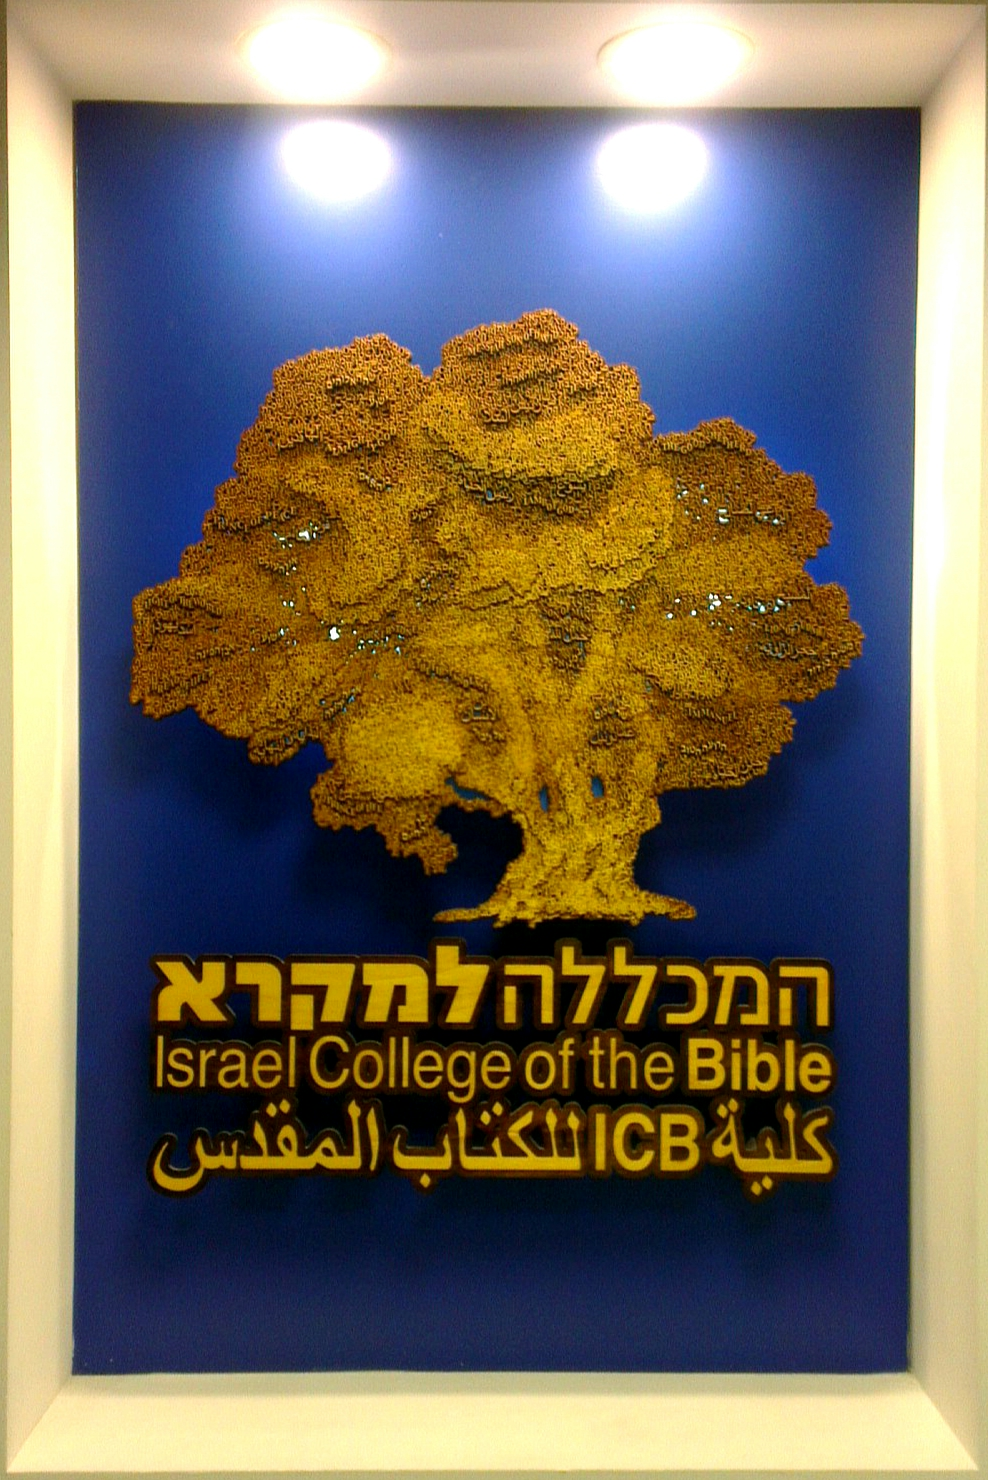 Israel College of the Bible - Wikipedia